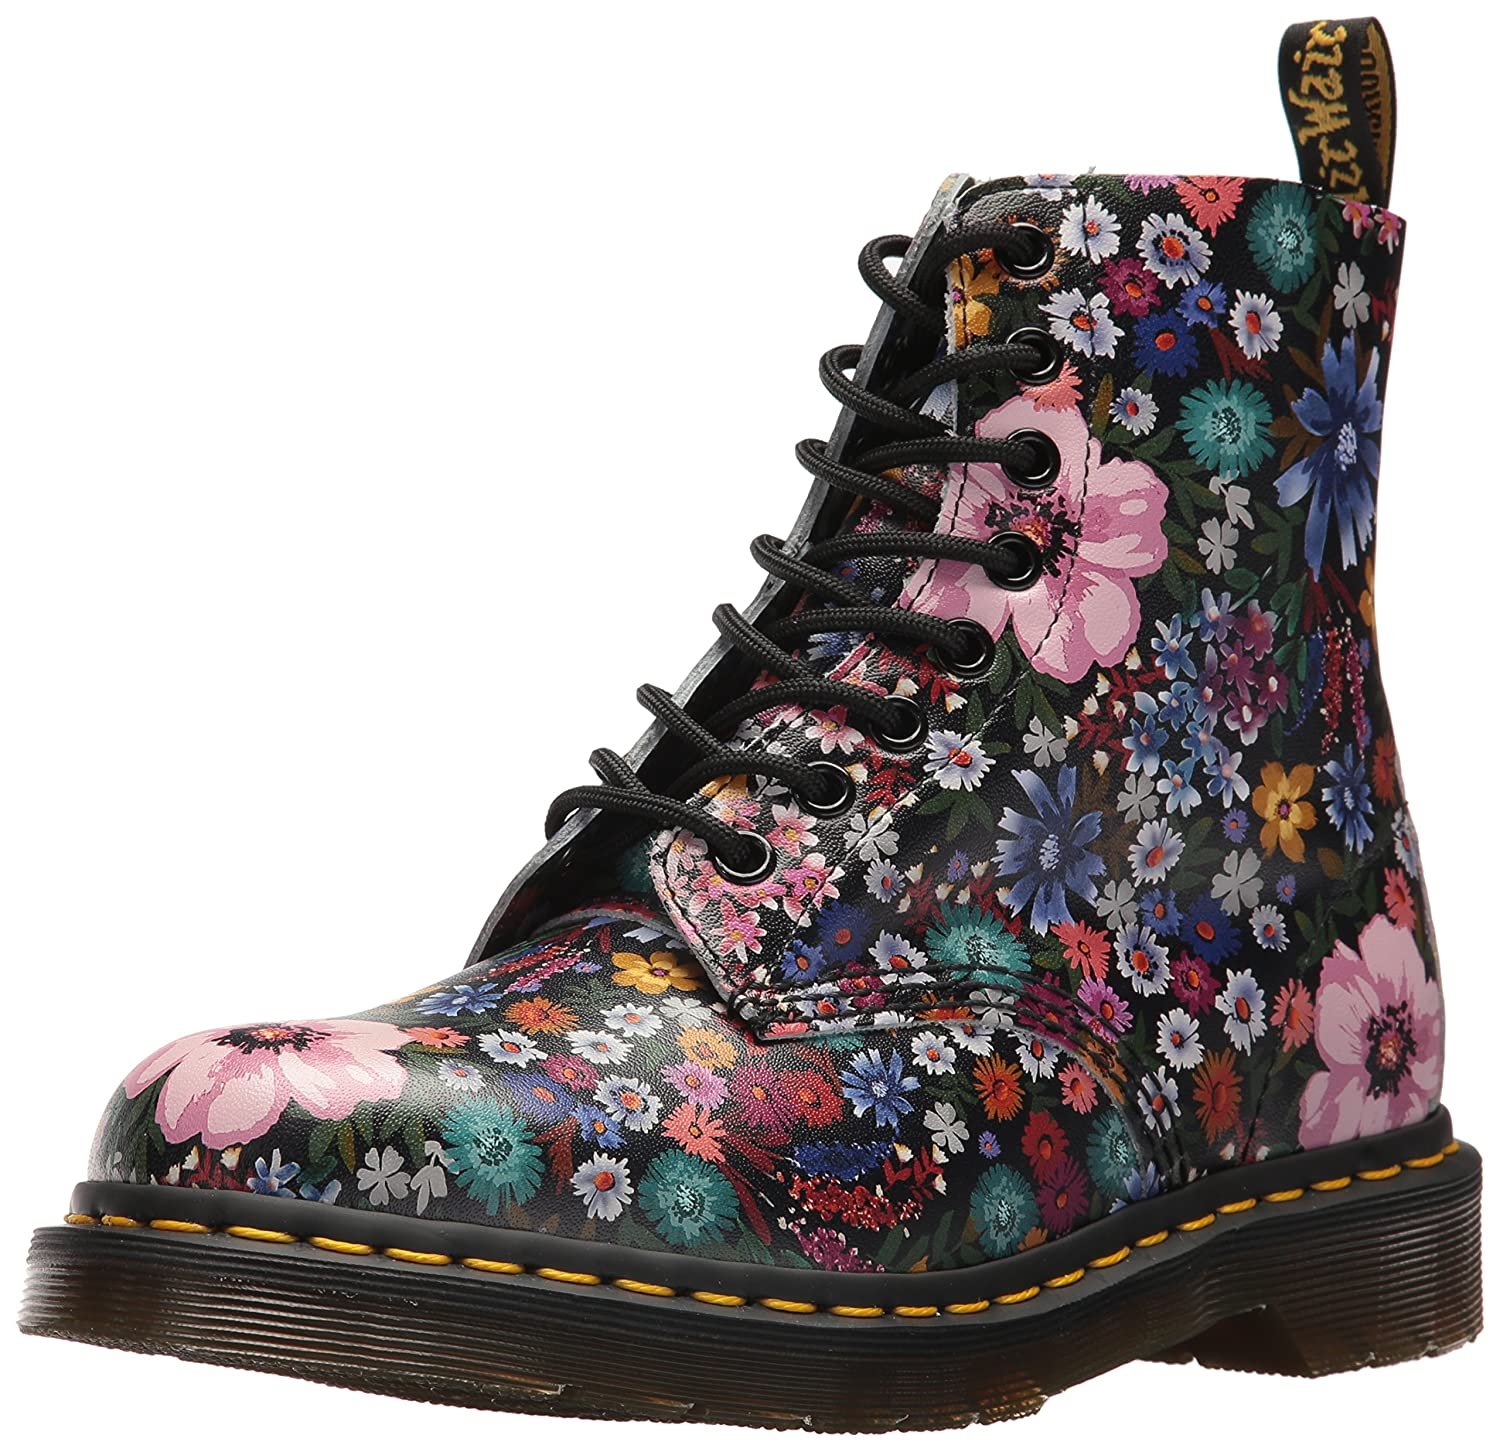 9e7d10302709 Dr. Martens Martens Martens Women s Pascal Wanderlust Fashion Boot  B071K8DHW4 6 Medium UK (8